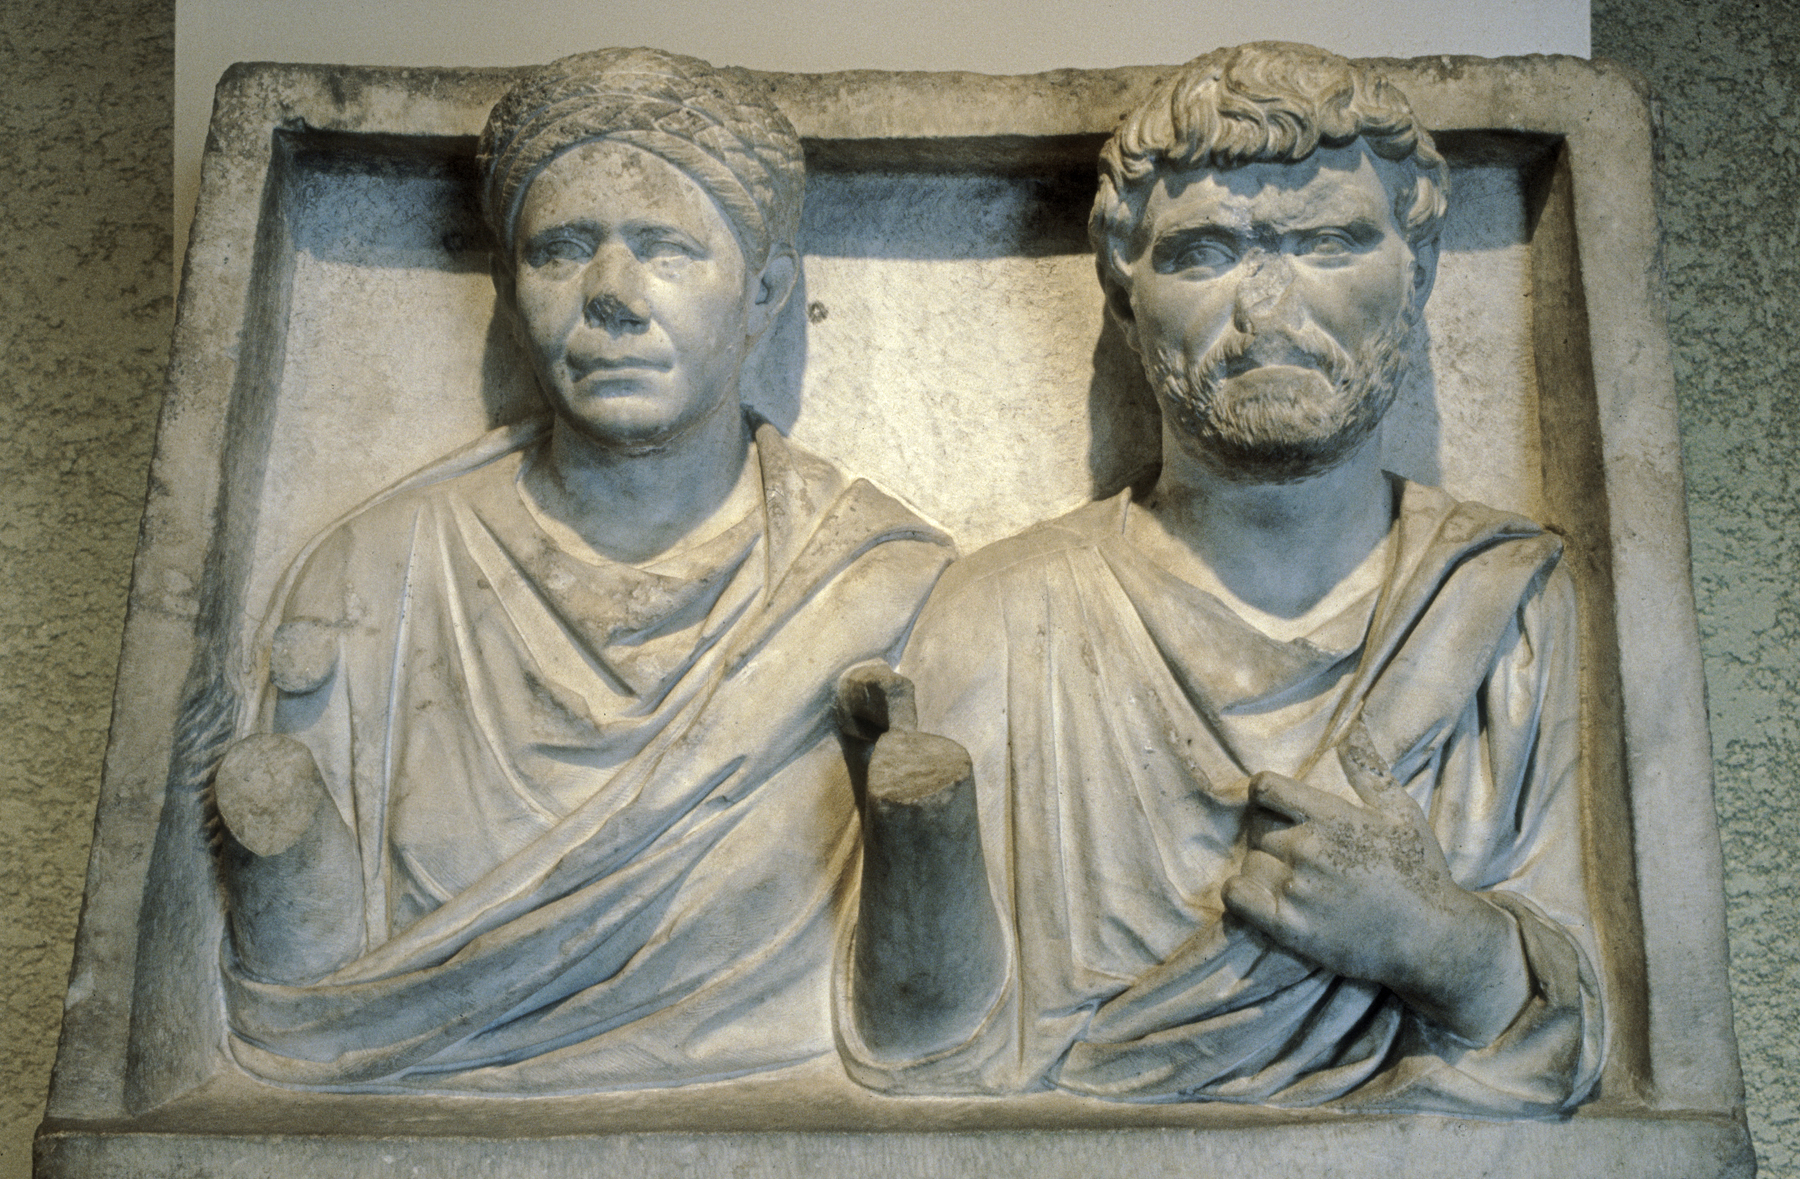 http://upload.wikimedia.org/wikipedia/commons/d/d8/Roman_-_Funerary_Monument_of_a_Husband_and_Wife_-_Walters_2320.jpg